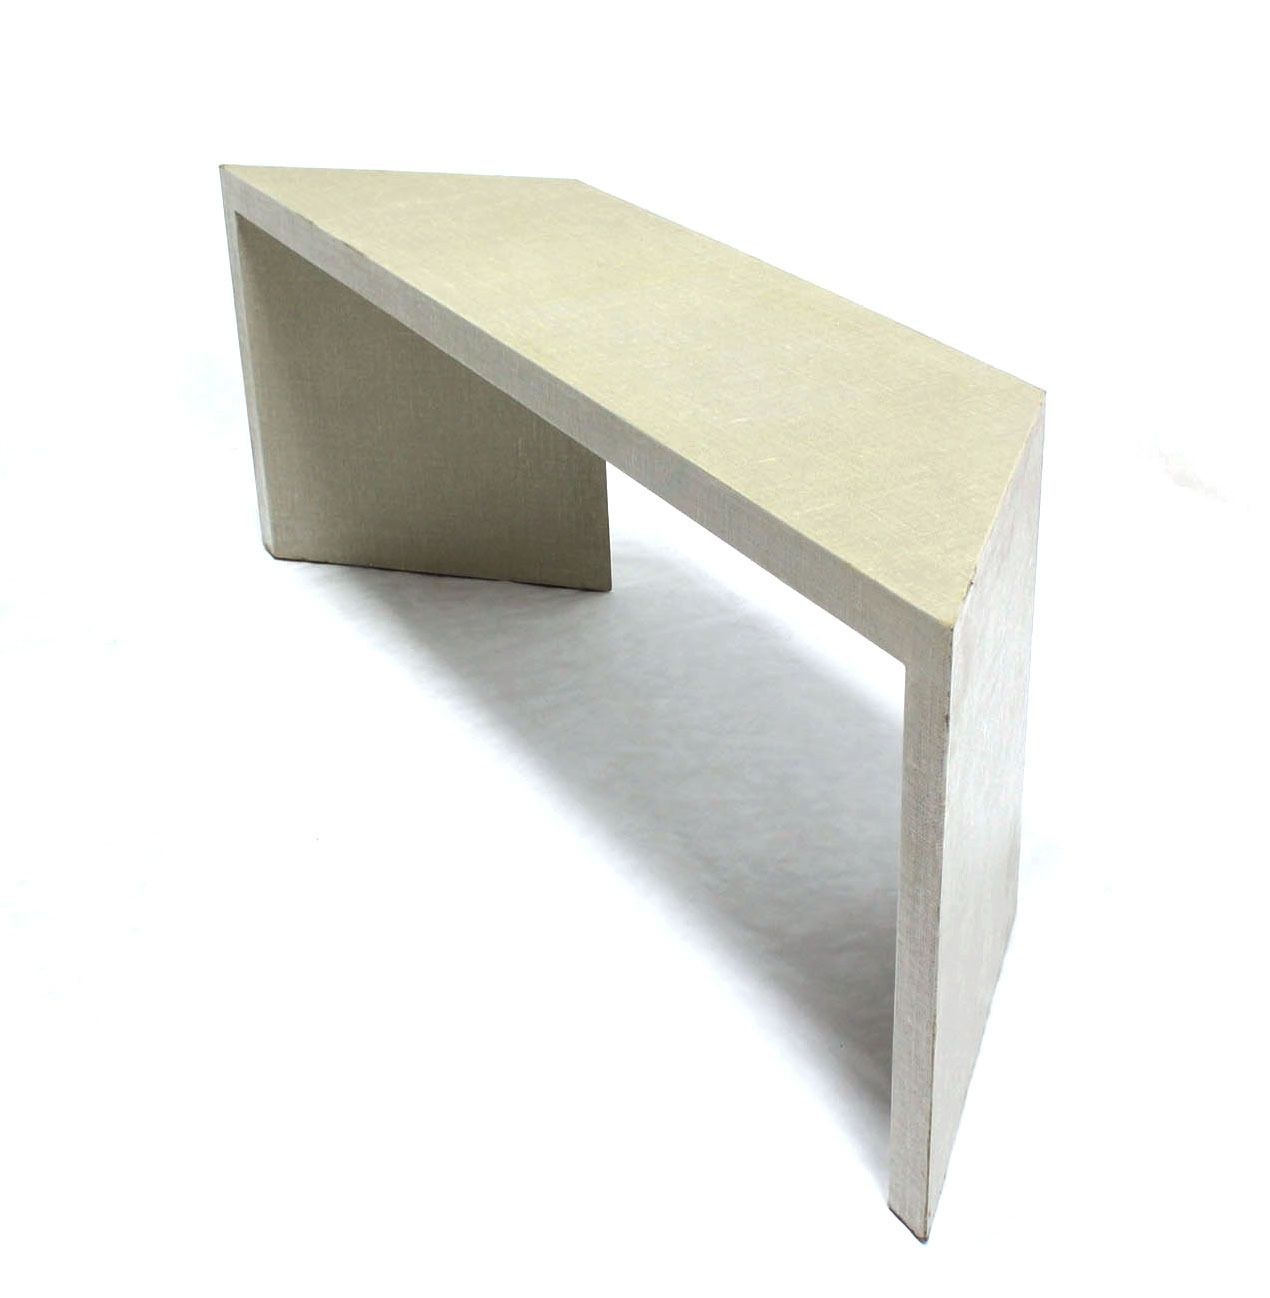 Linen Cloth Mid Century Modern Console Table Of Unusual Shape Image 8